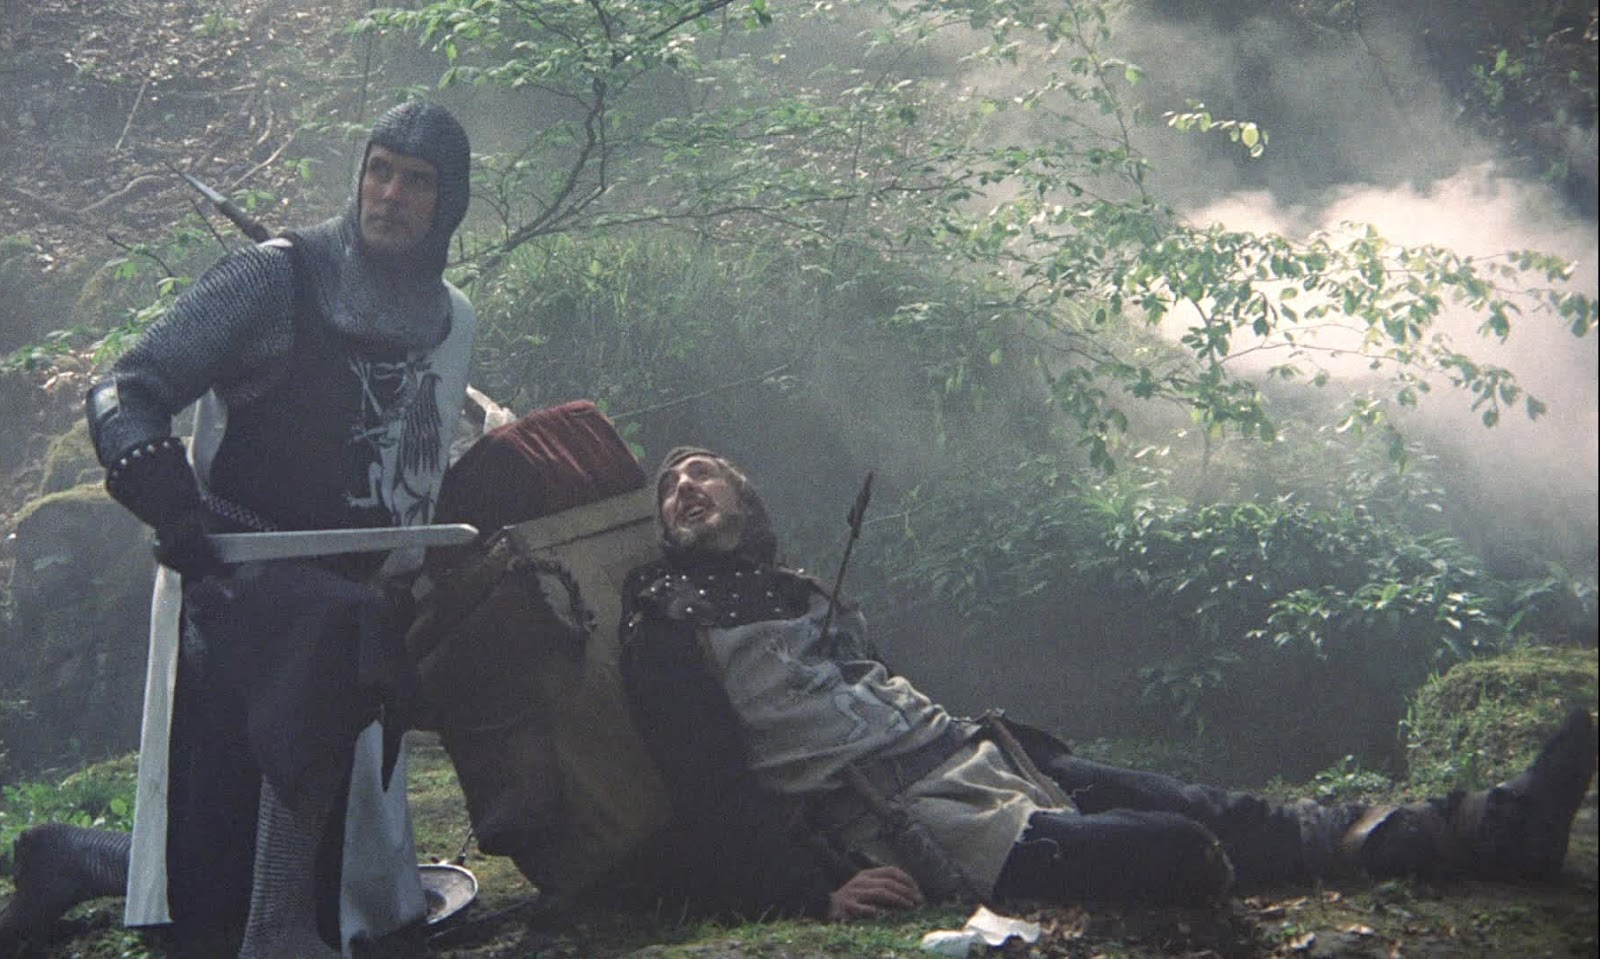 a review of the film monty python and the holy grail Monty python and the holy grail (1975) is a lolfunny adventure, comedy movie starring graham chapman and john cleese it is directed by terry gilliam monty python and the holy grail loosely follows the legend of king arthur.